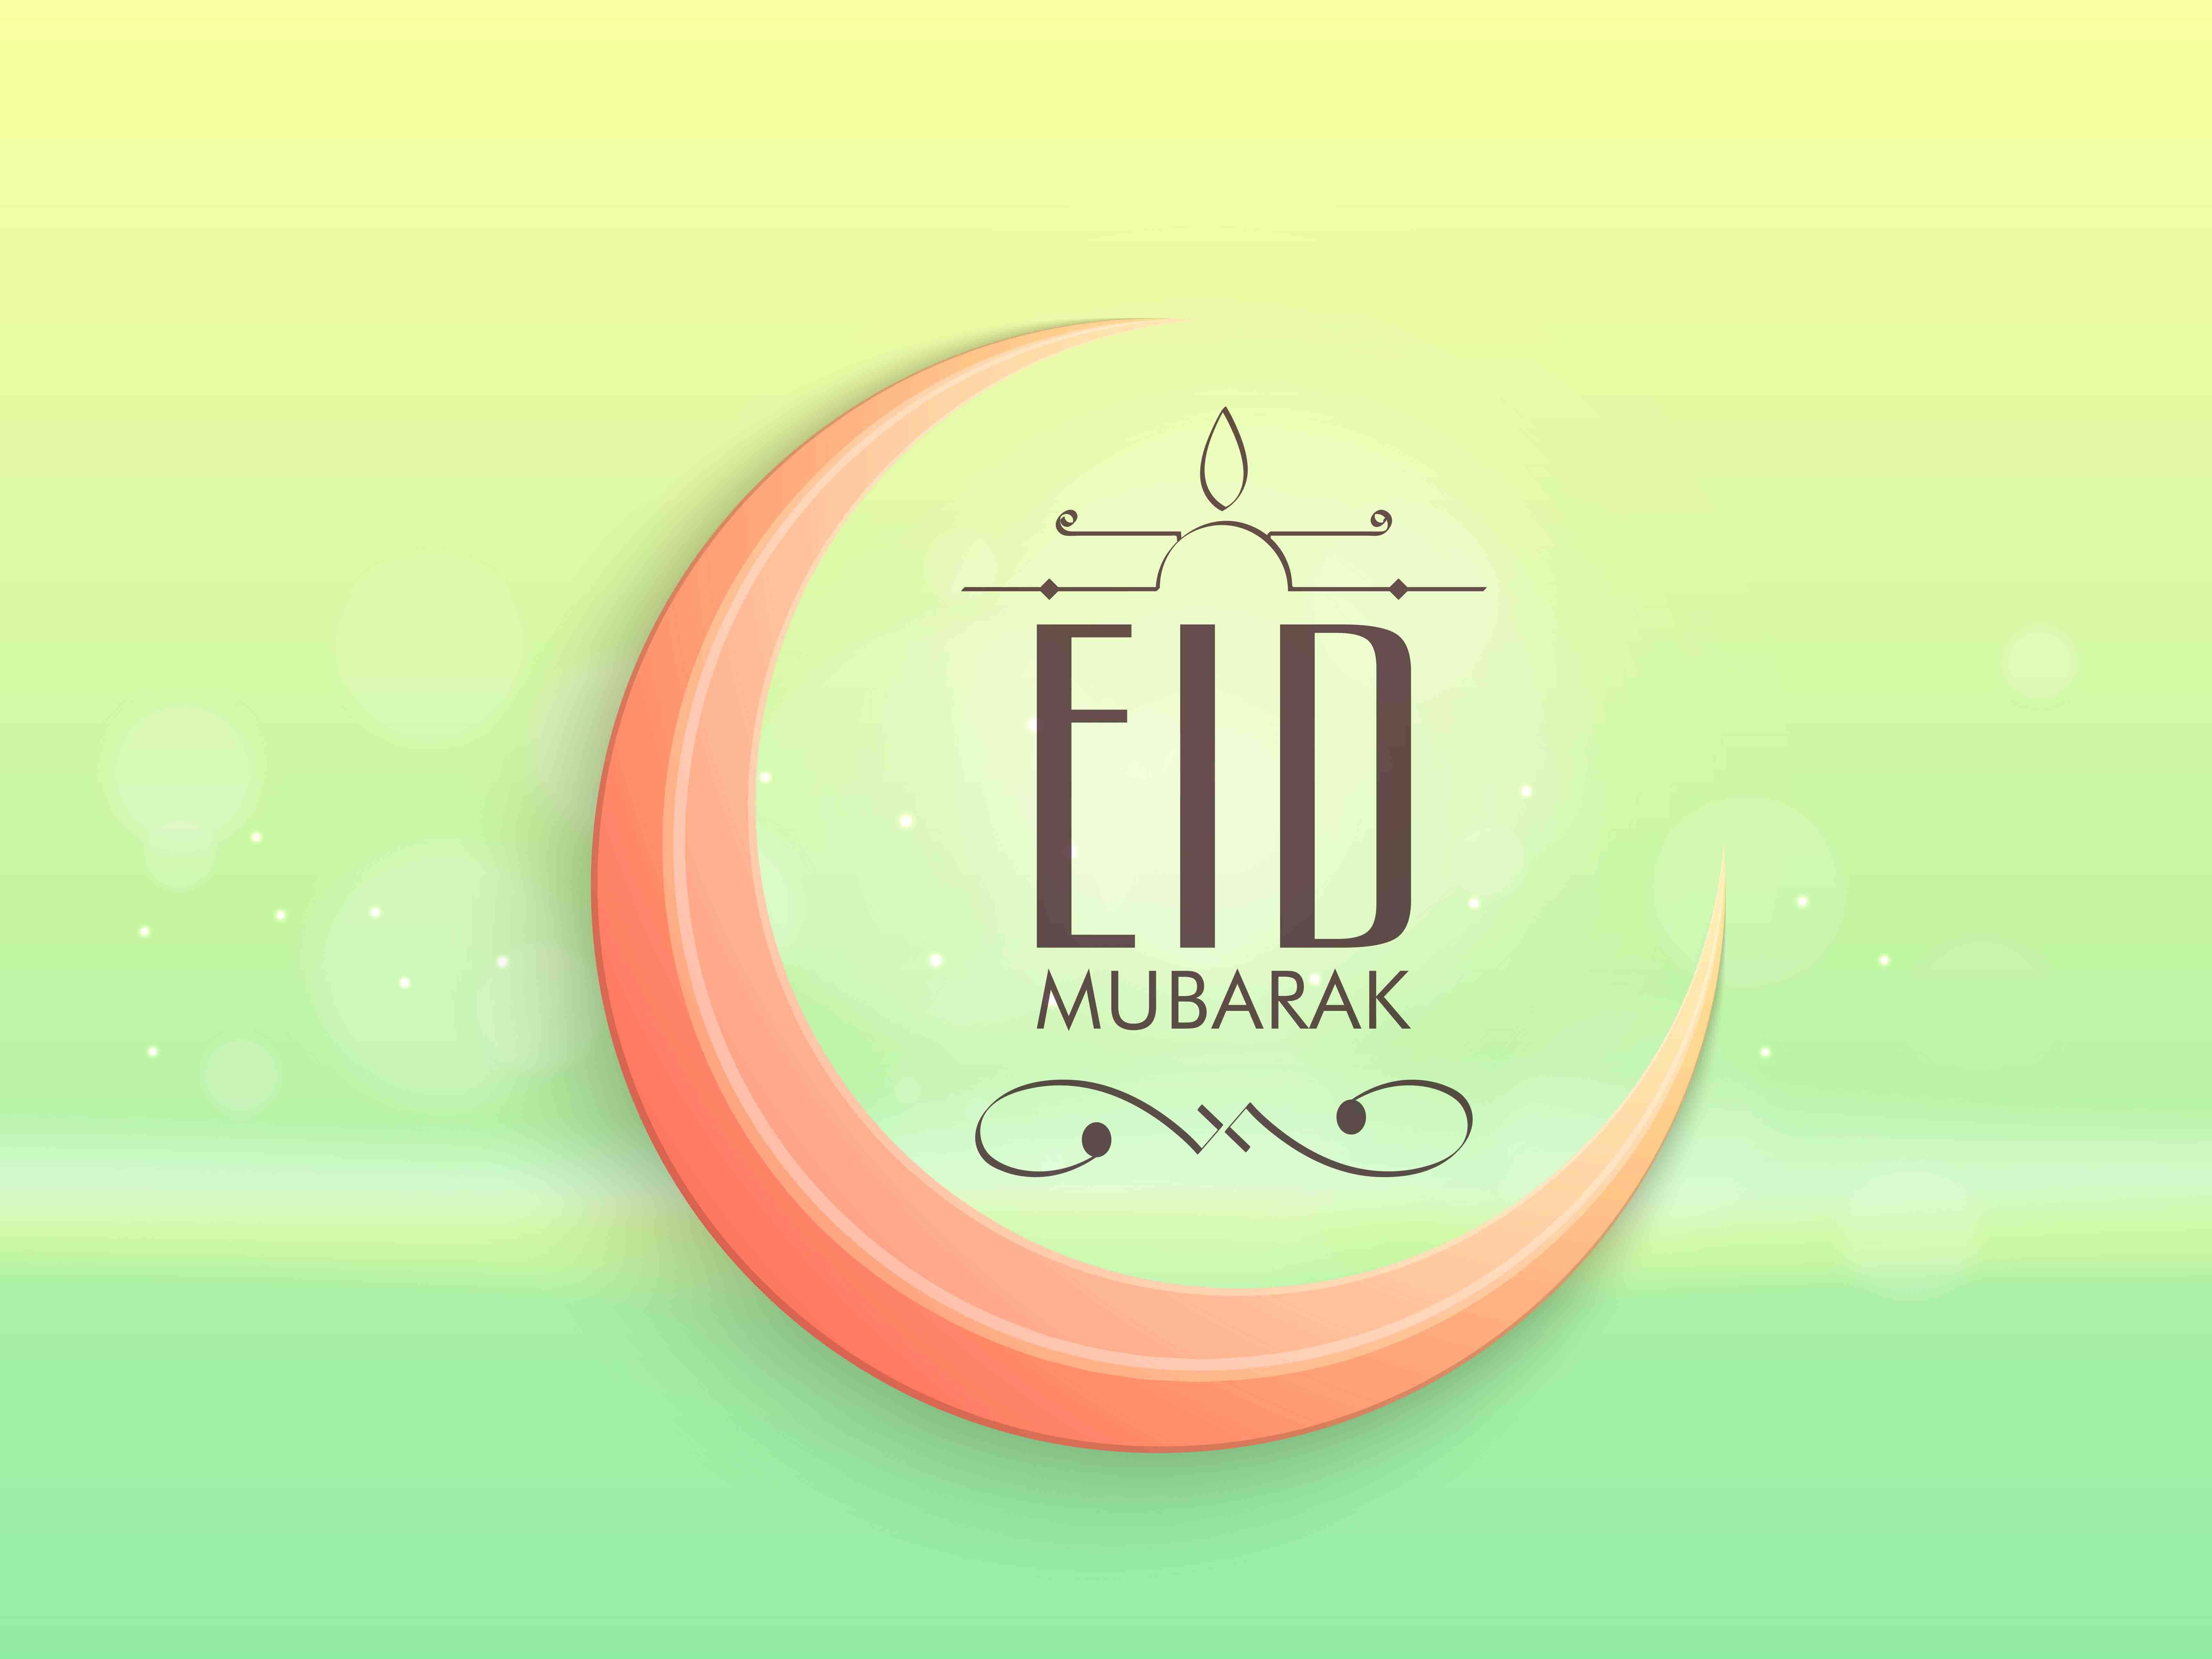 May Allah Bring You Joy Happiness Peace And Prosperity On